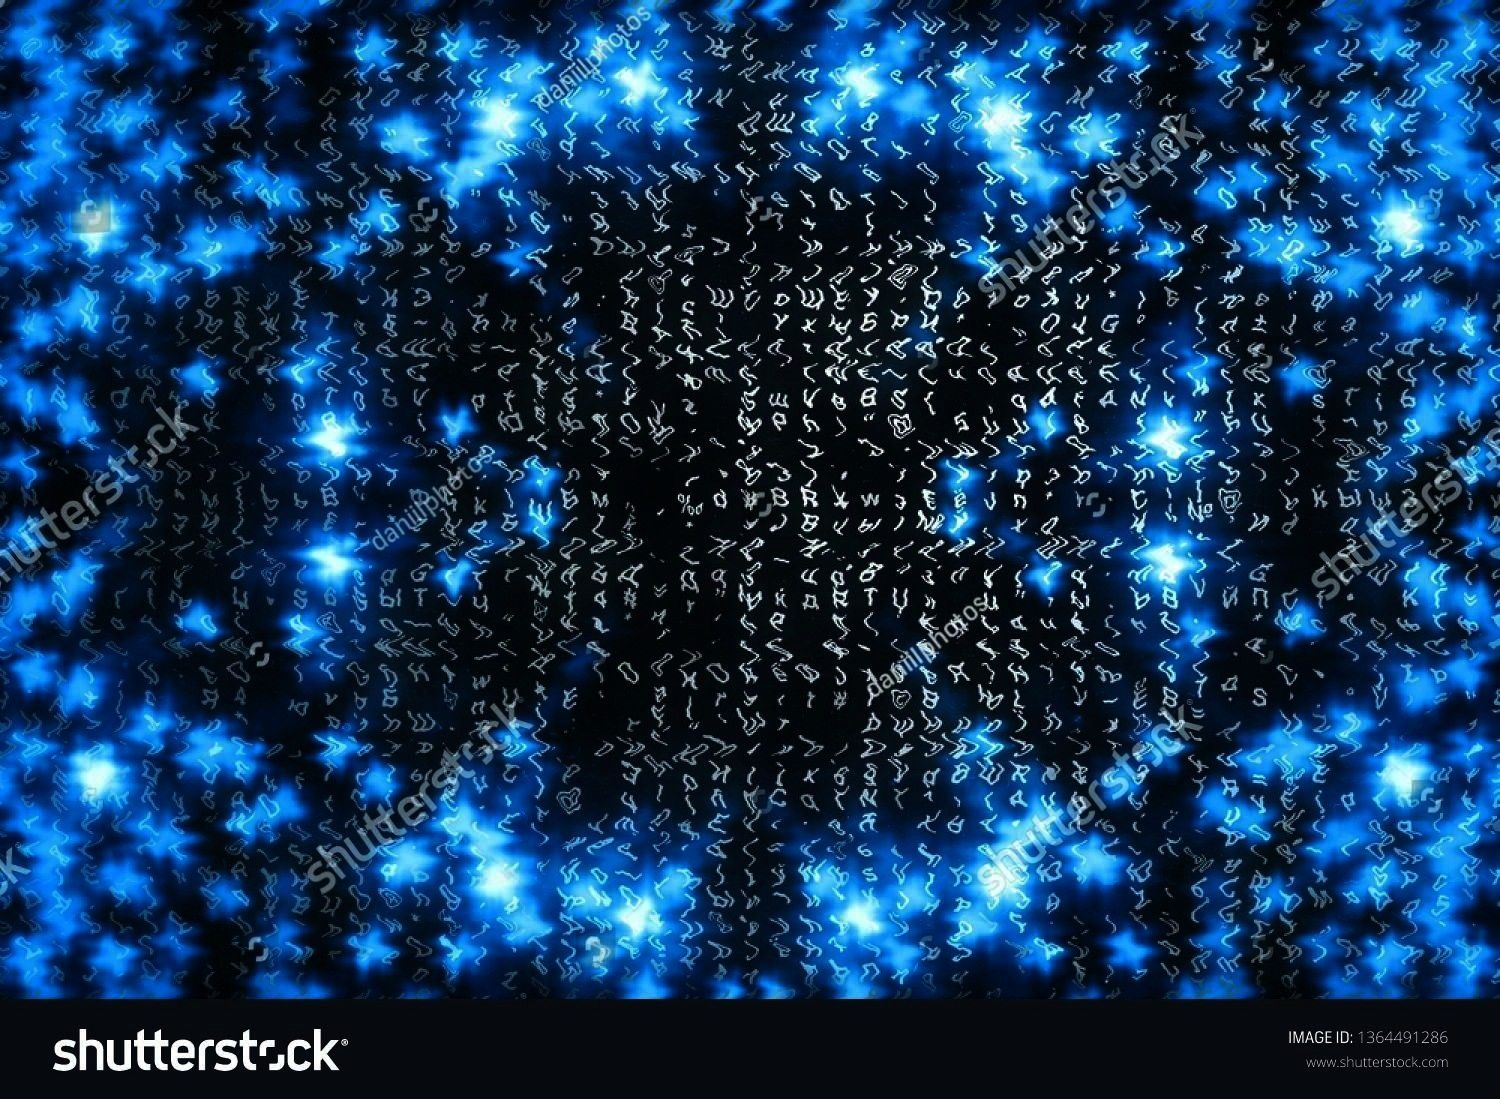 background Abstract cyberspace concept Characters fall down Matrix from symbols stream Virtual reality design Complex algorithm data hacking Cyan digital sparks Blue matr...